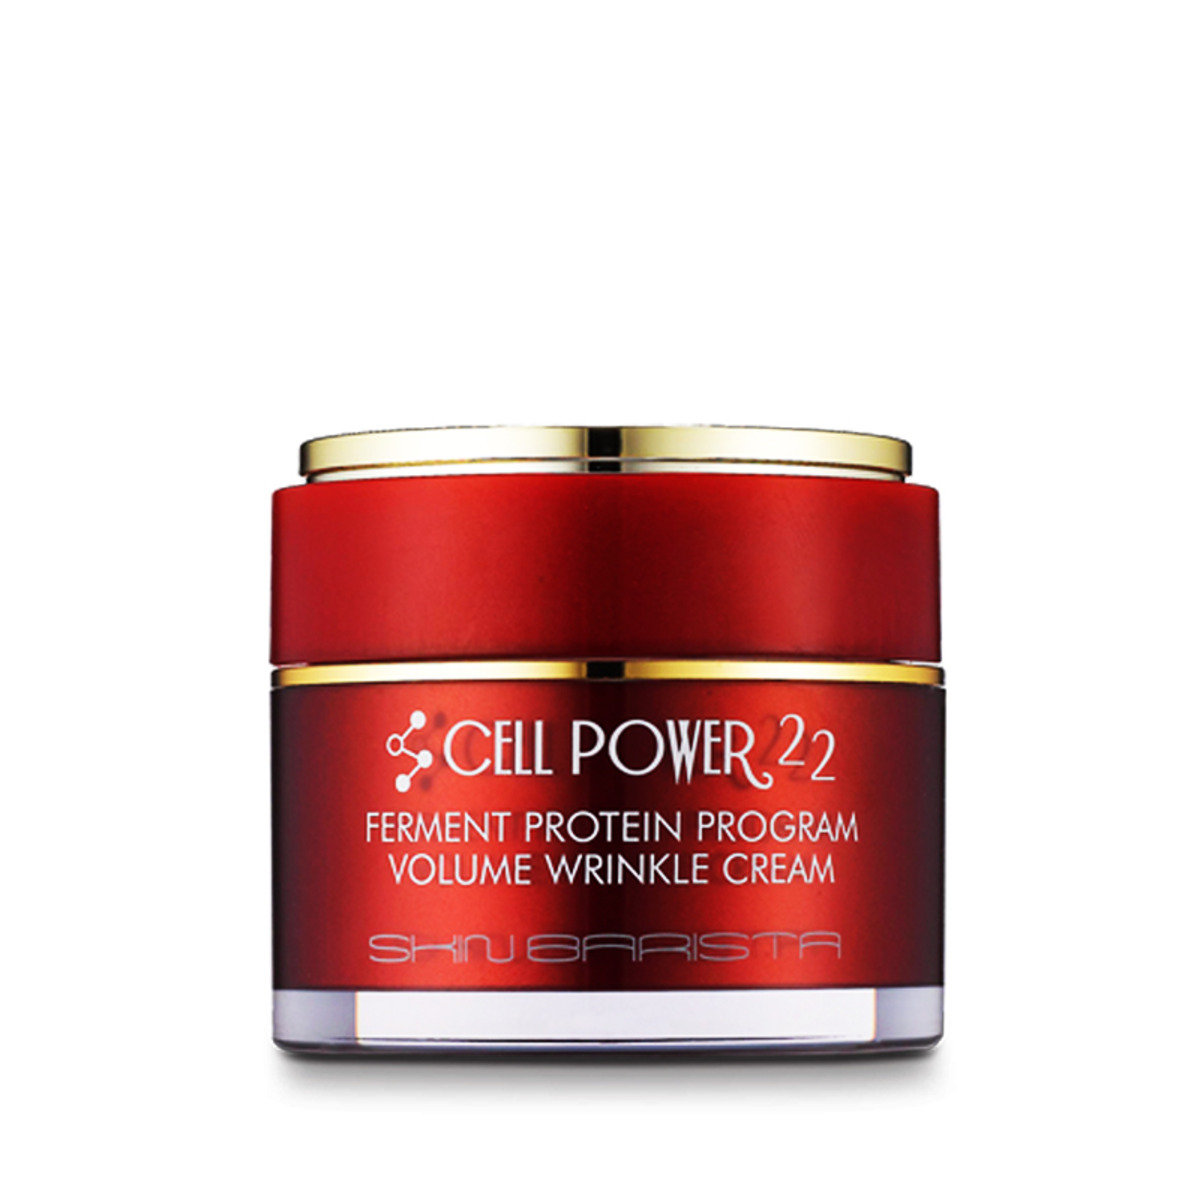 CELL POWER22 FERMENT PROTEIN PROGRAM VOLUME WRINKLE CREAM